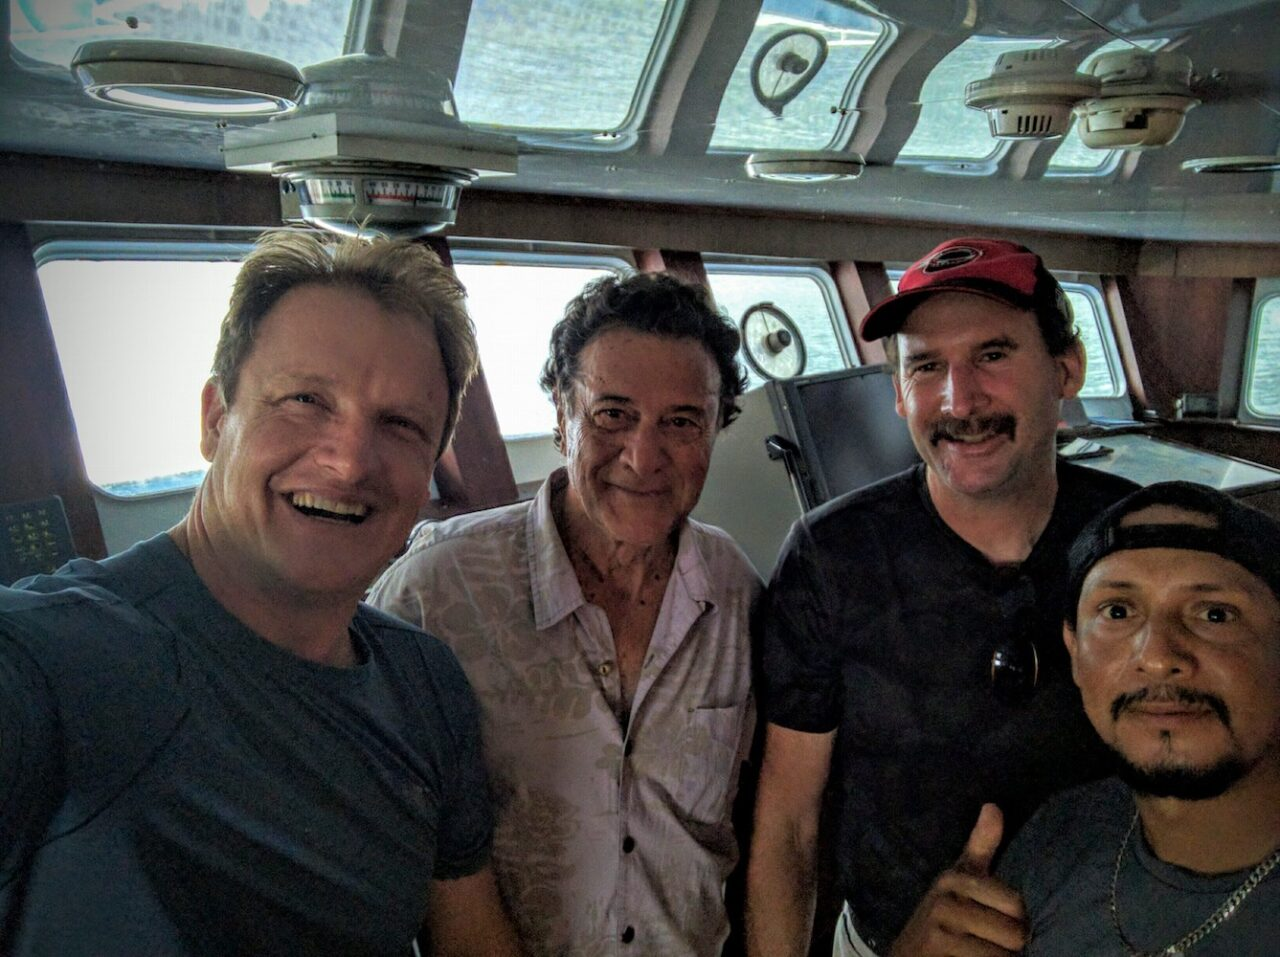 F – Fellow San Diegan – Captain gives me permission to board